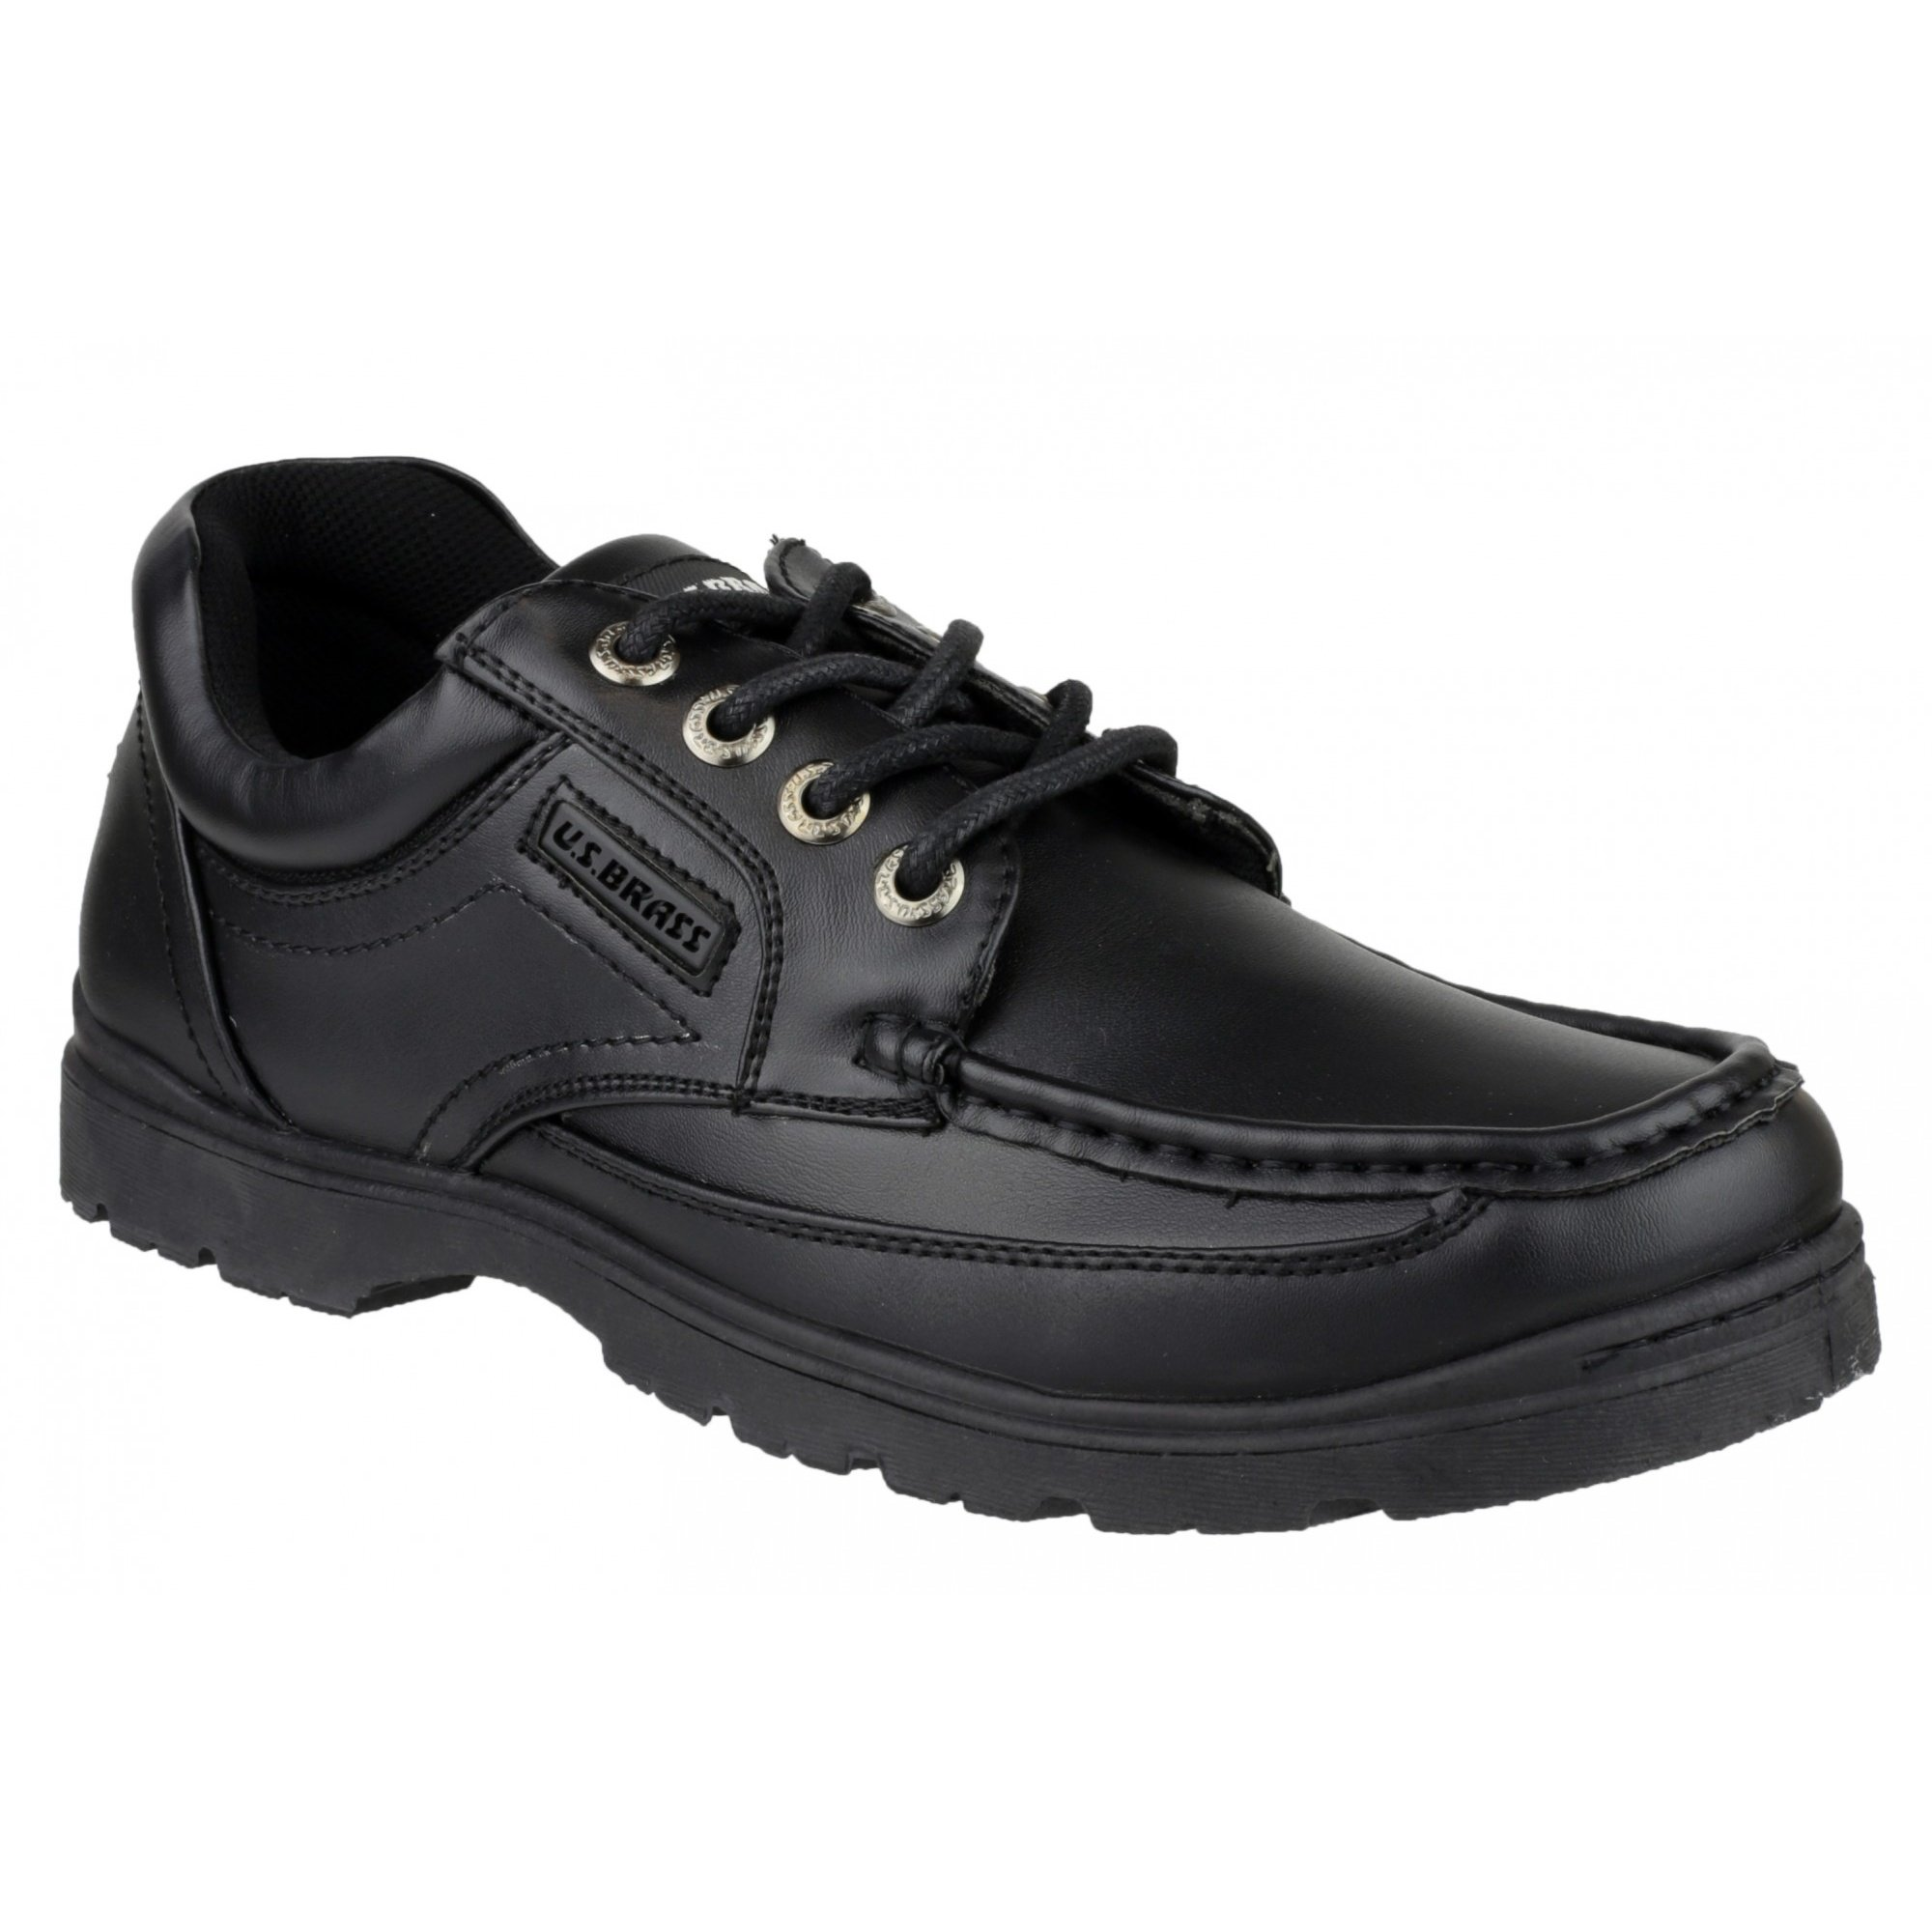 US Brass Stubby 3 Lace Up Shoe/Mens Shoes (10 US) (Black)